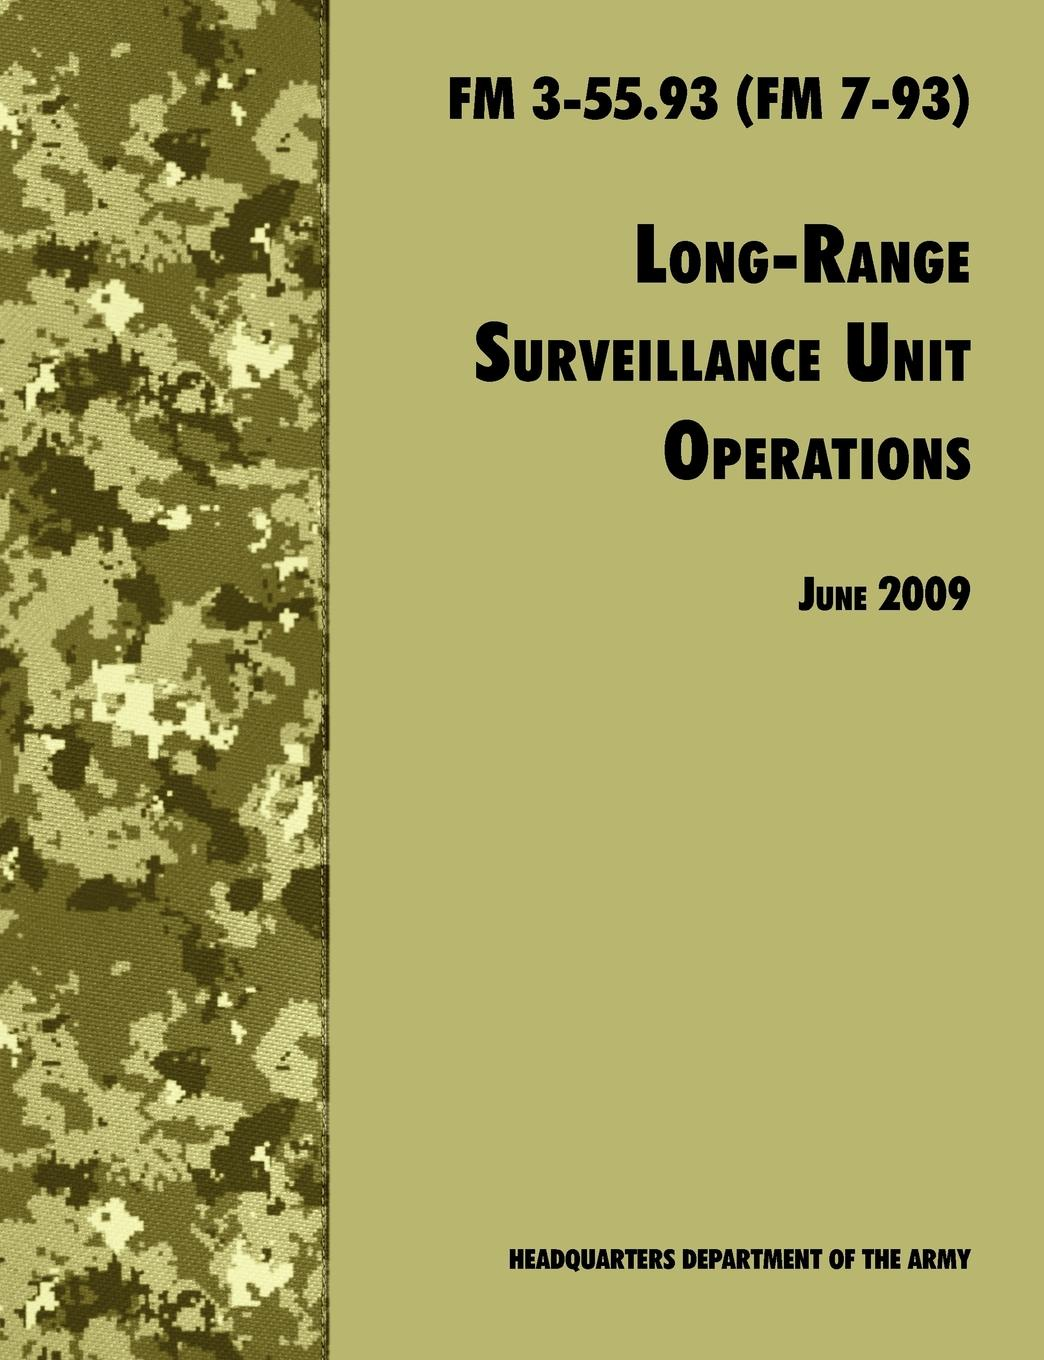 U.S. Department of the Army, U.S. Army Infantry School, Army Training and Doctrine Command Long Range Unit Surveillance Operations FM 3-55.93 (FM 7-93) us army military uniform for men training digital camouflage suit pilots parachuted outdoor summer training suit